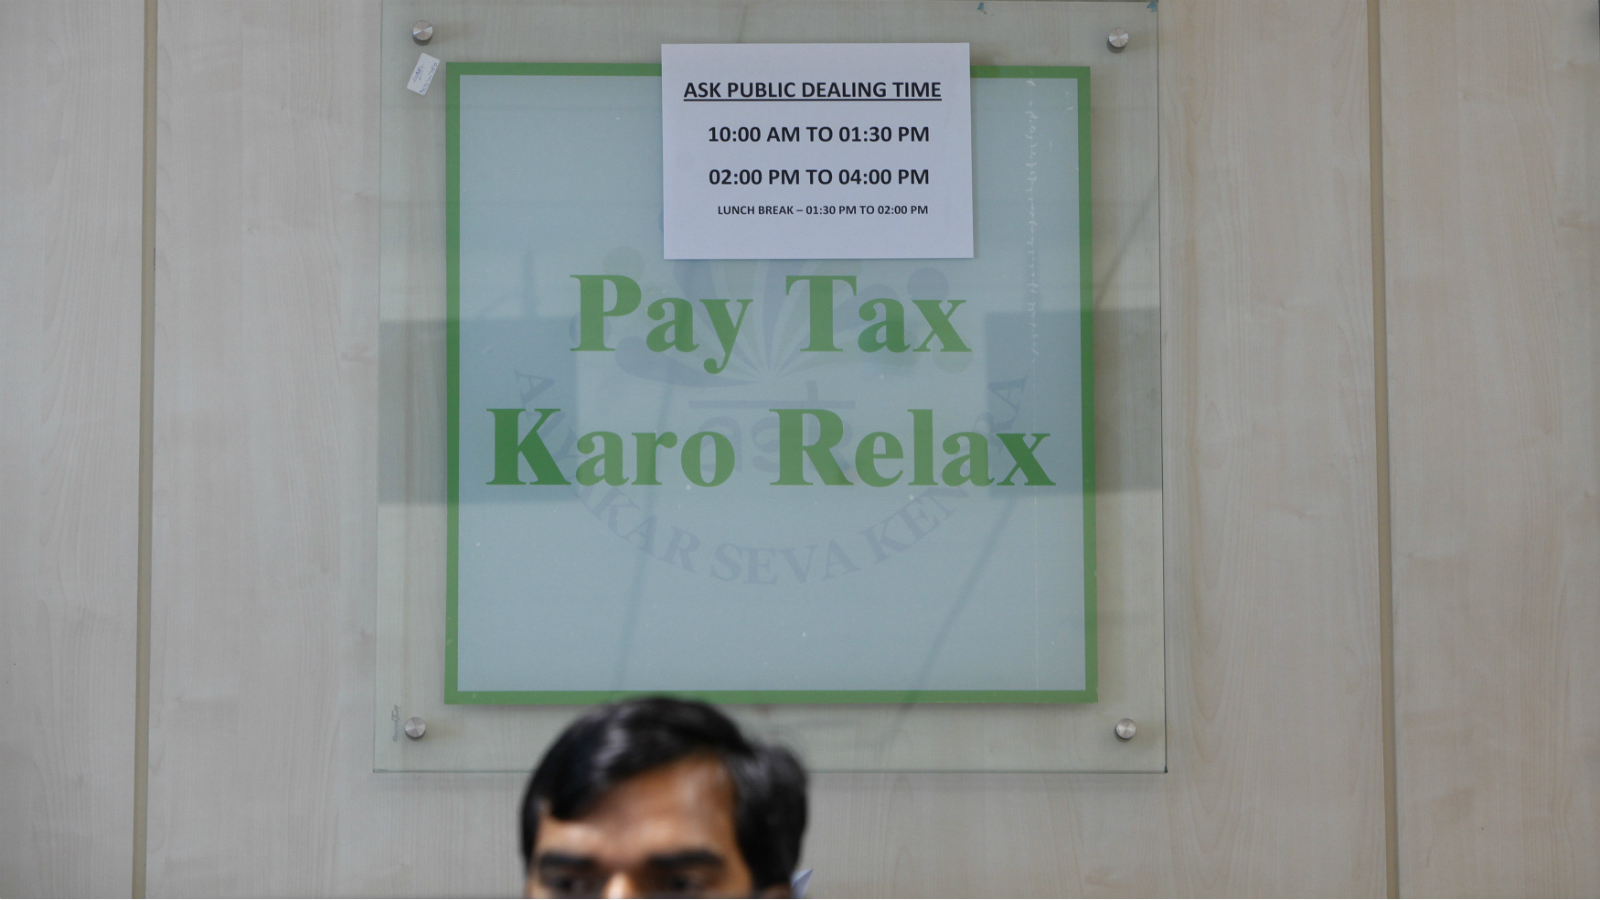 An employee works inside Income Tax office in New Delhi April 5, 2013. Indian tax officials have opened up a new front in their battle to increase revenue collected from companies, targeting manufacturing firms that slash prices below cost in order to sell slow-moving inventory. Picture taken April 5.